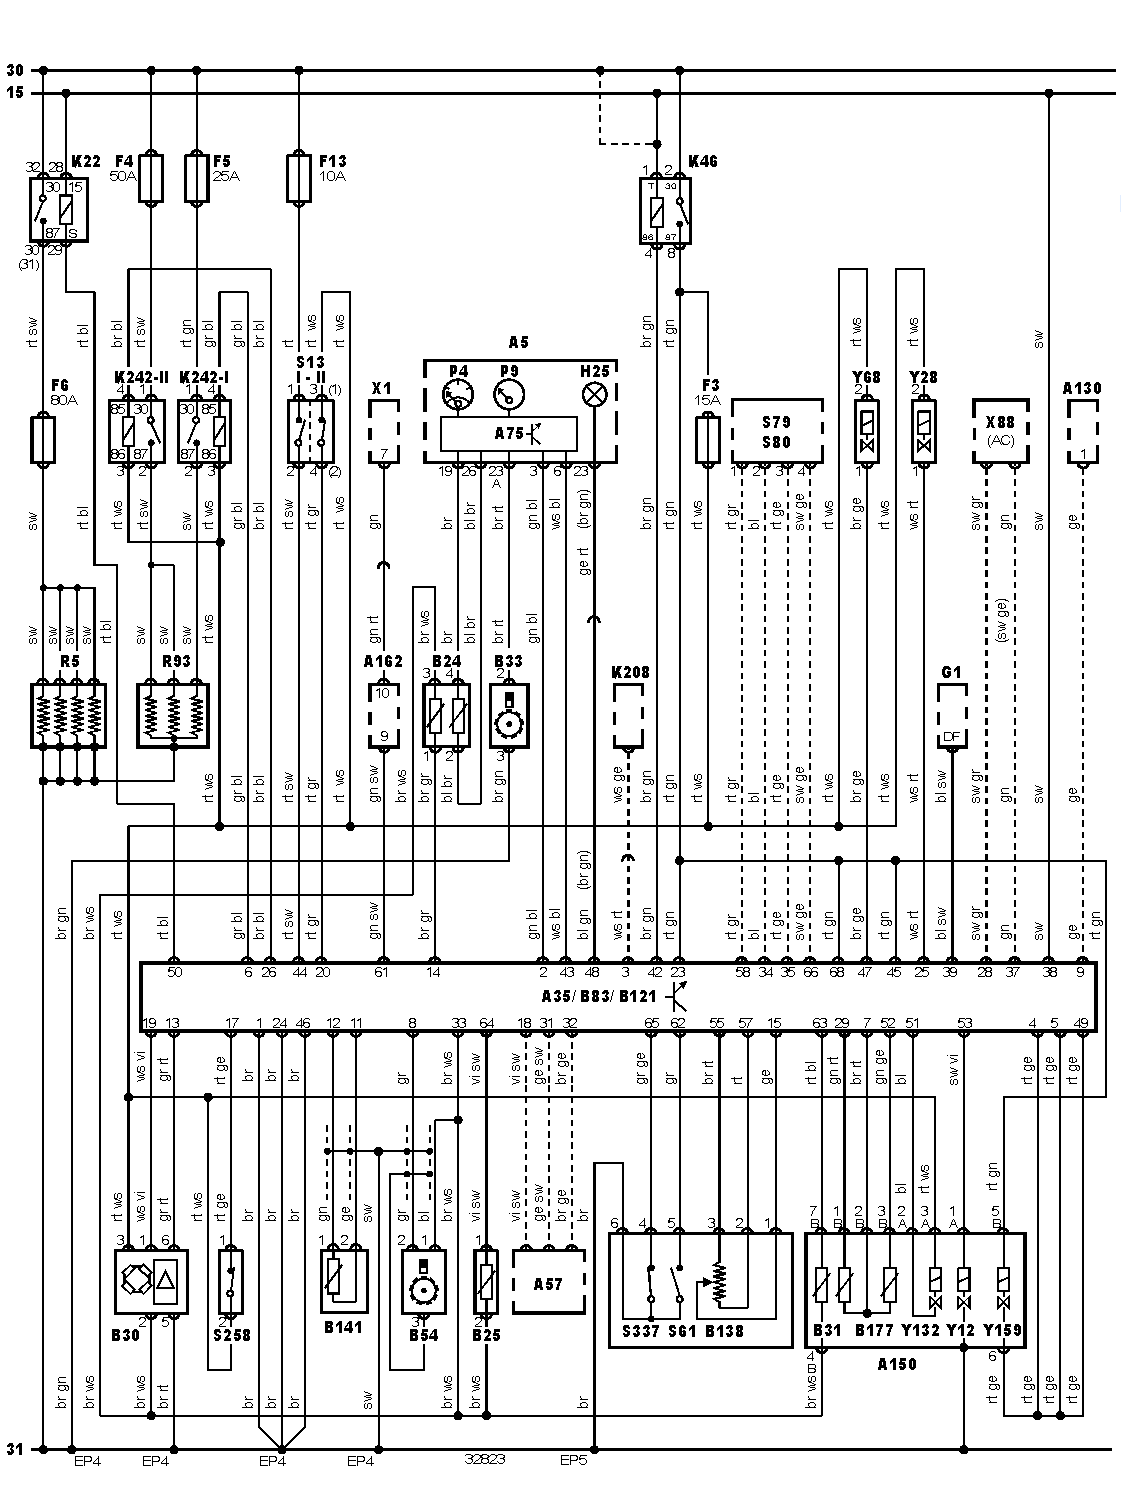 vw jetta tdi ecu wiring diagram mini cooper wiring